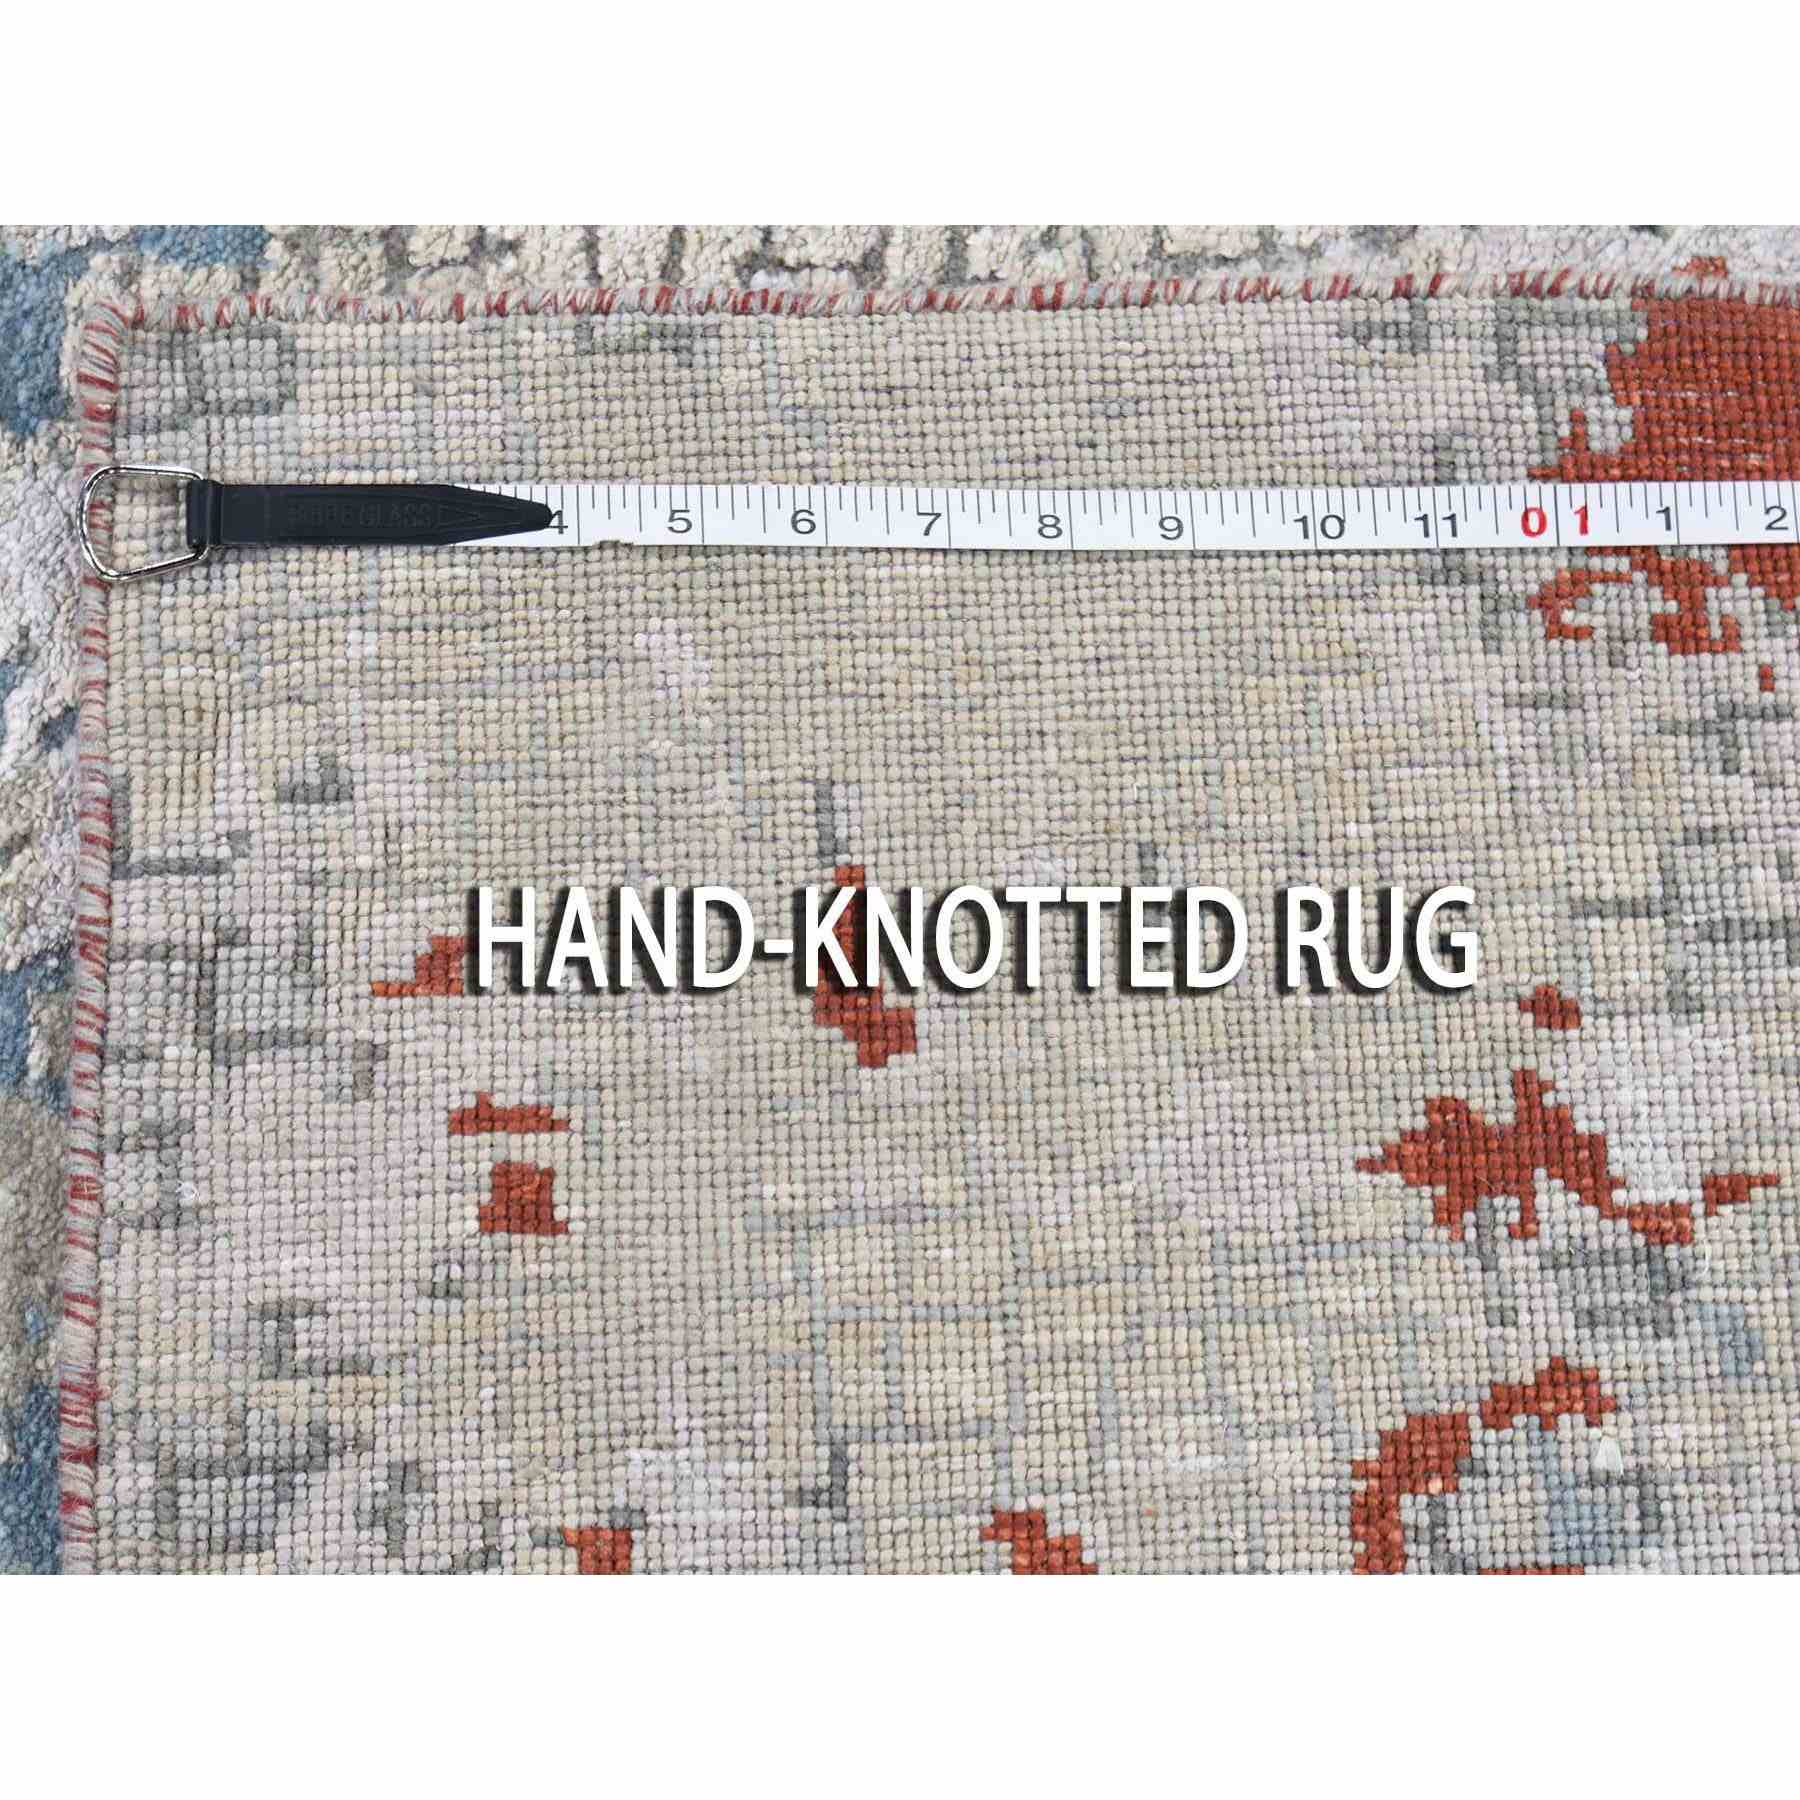 Modern-and-Contemporary-Hand-Knotted-Rug-243580